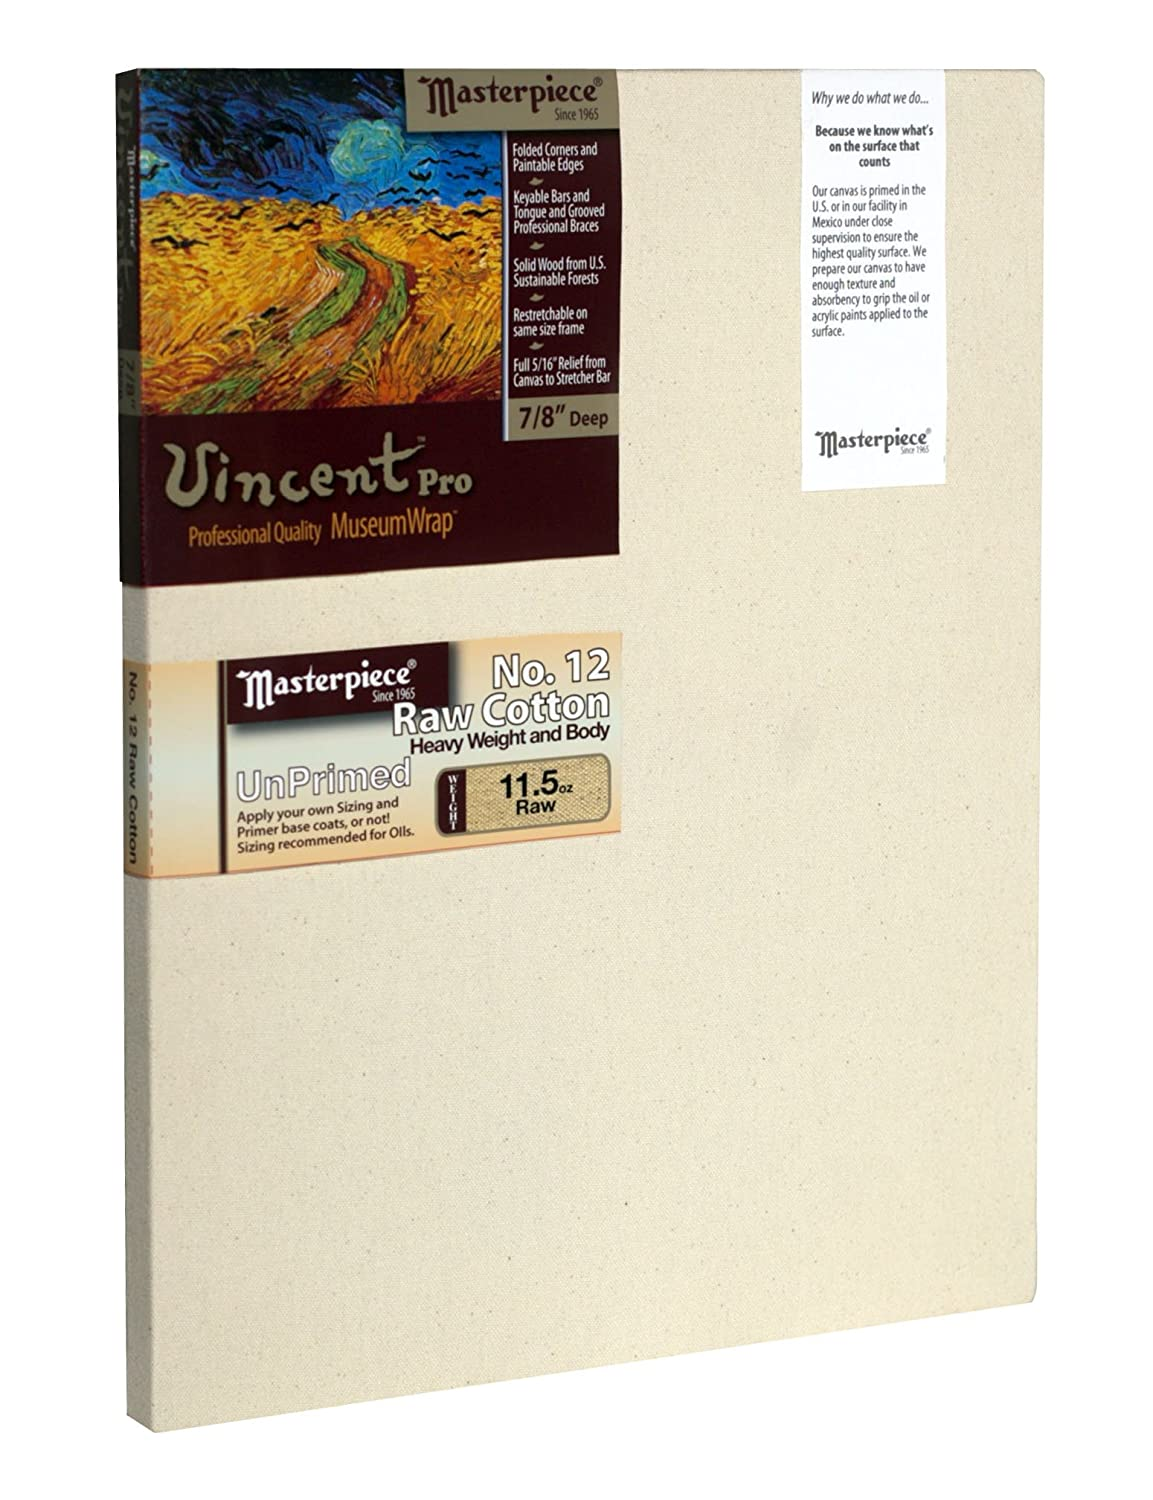 12 x 18 12 Raw Unprimed No Masterpiece Artist Canvas 41731 Vincent PRO 7//8 Deep Cotton 11.5oz